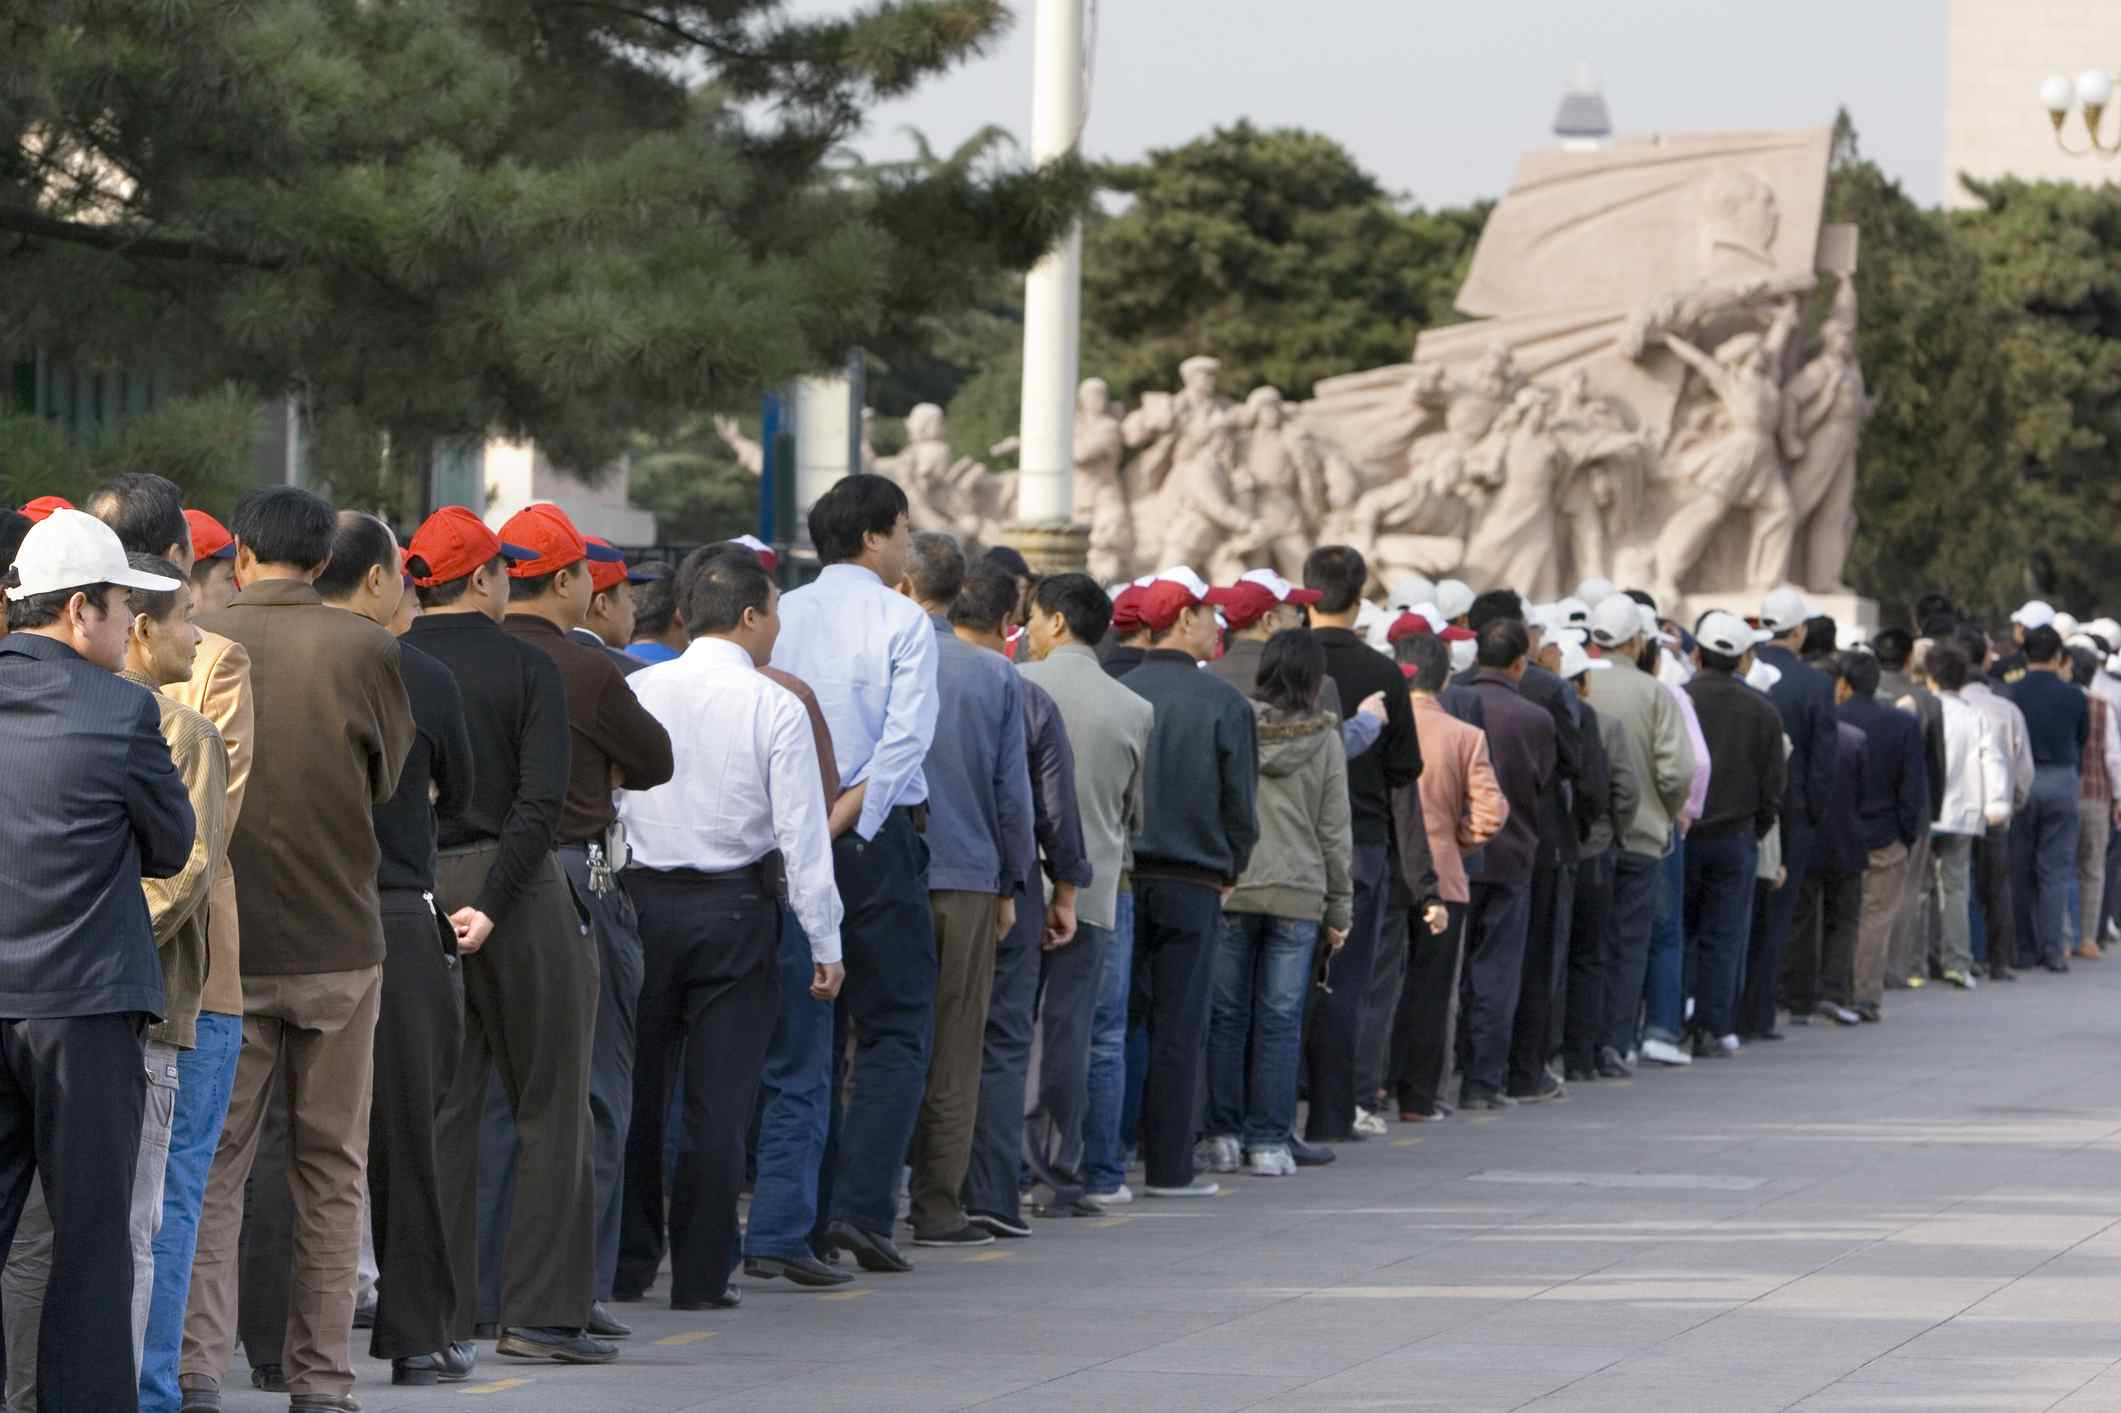 Endless queue for Mao's Tomb